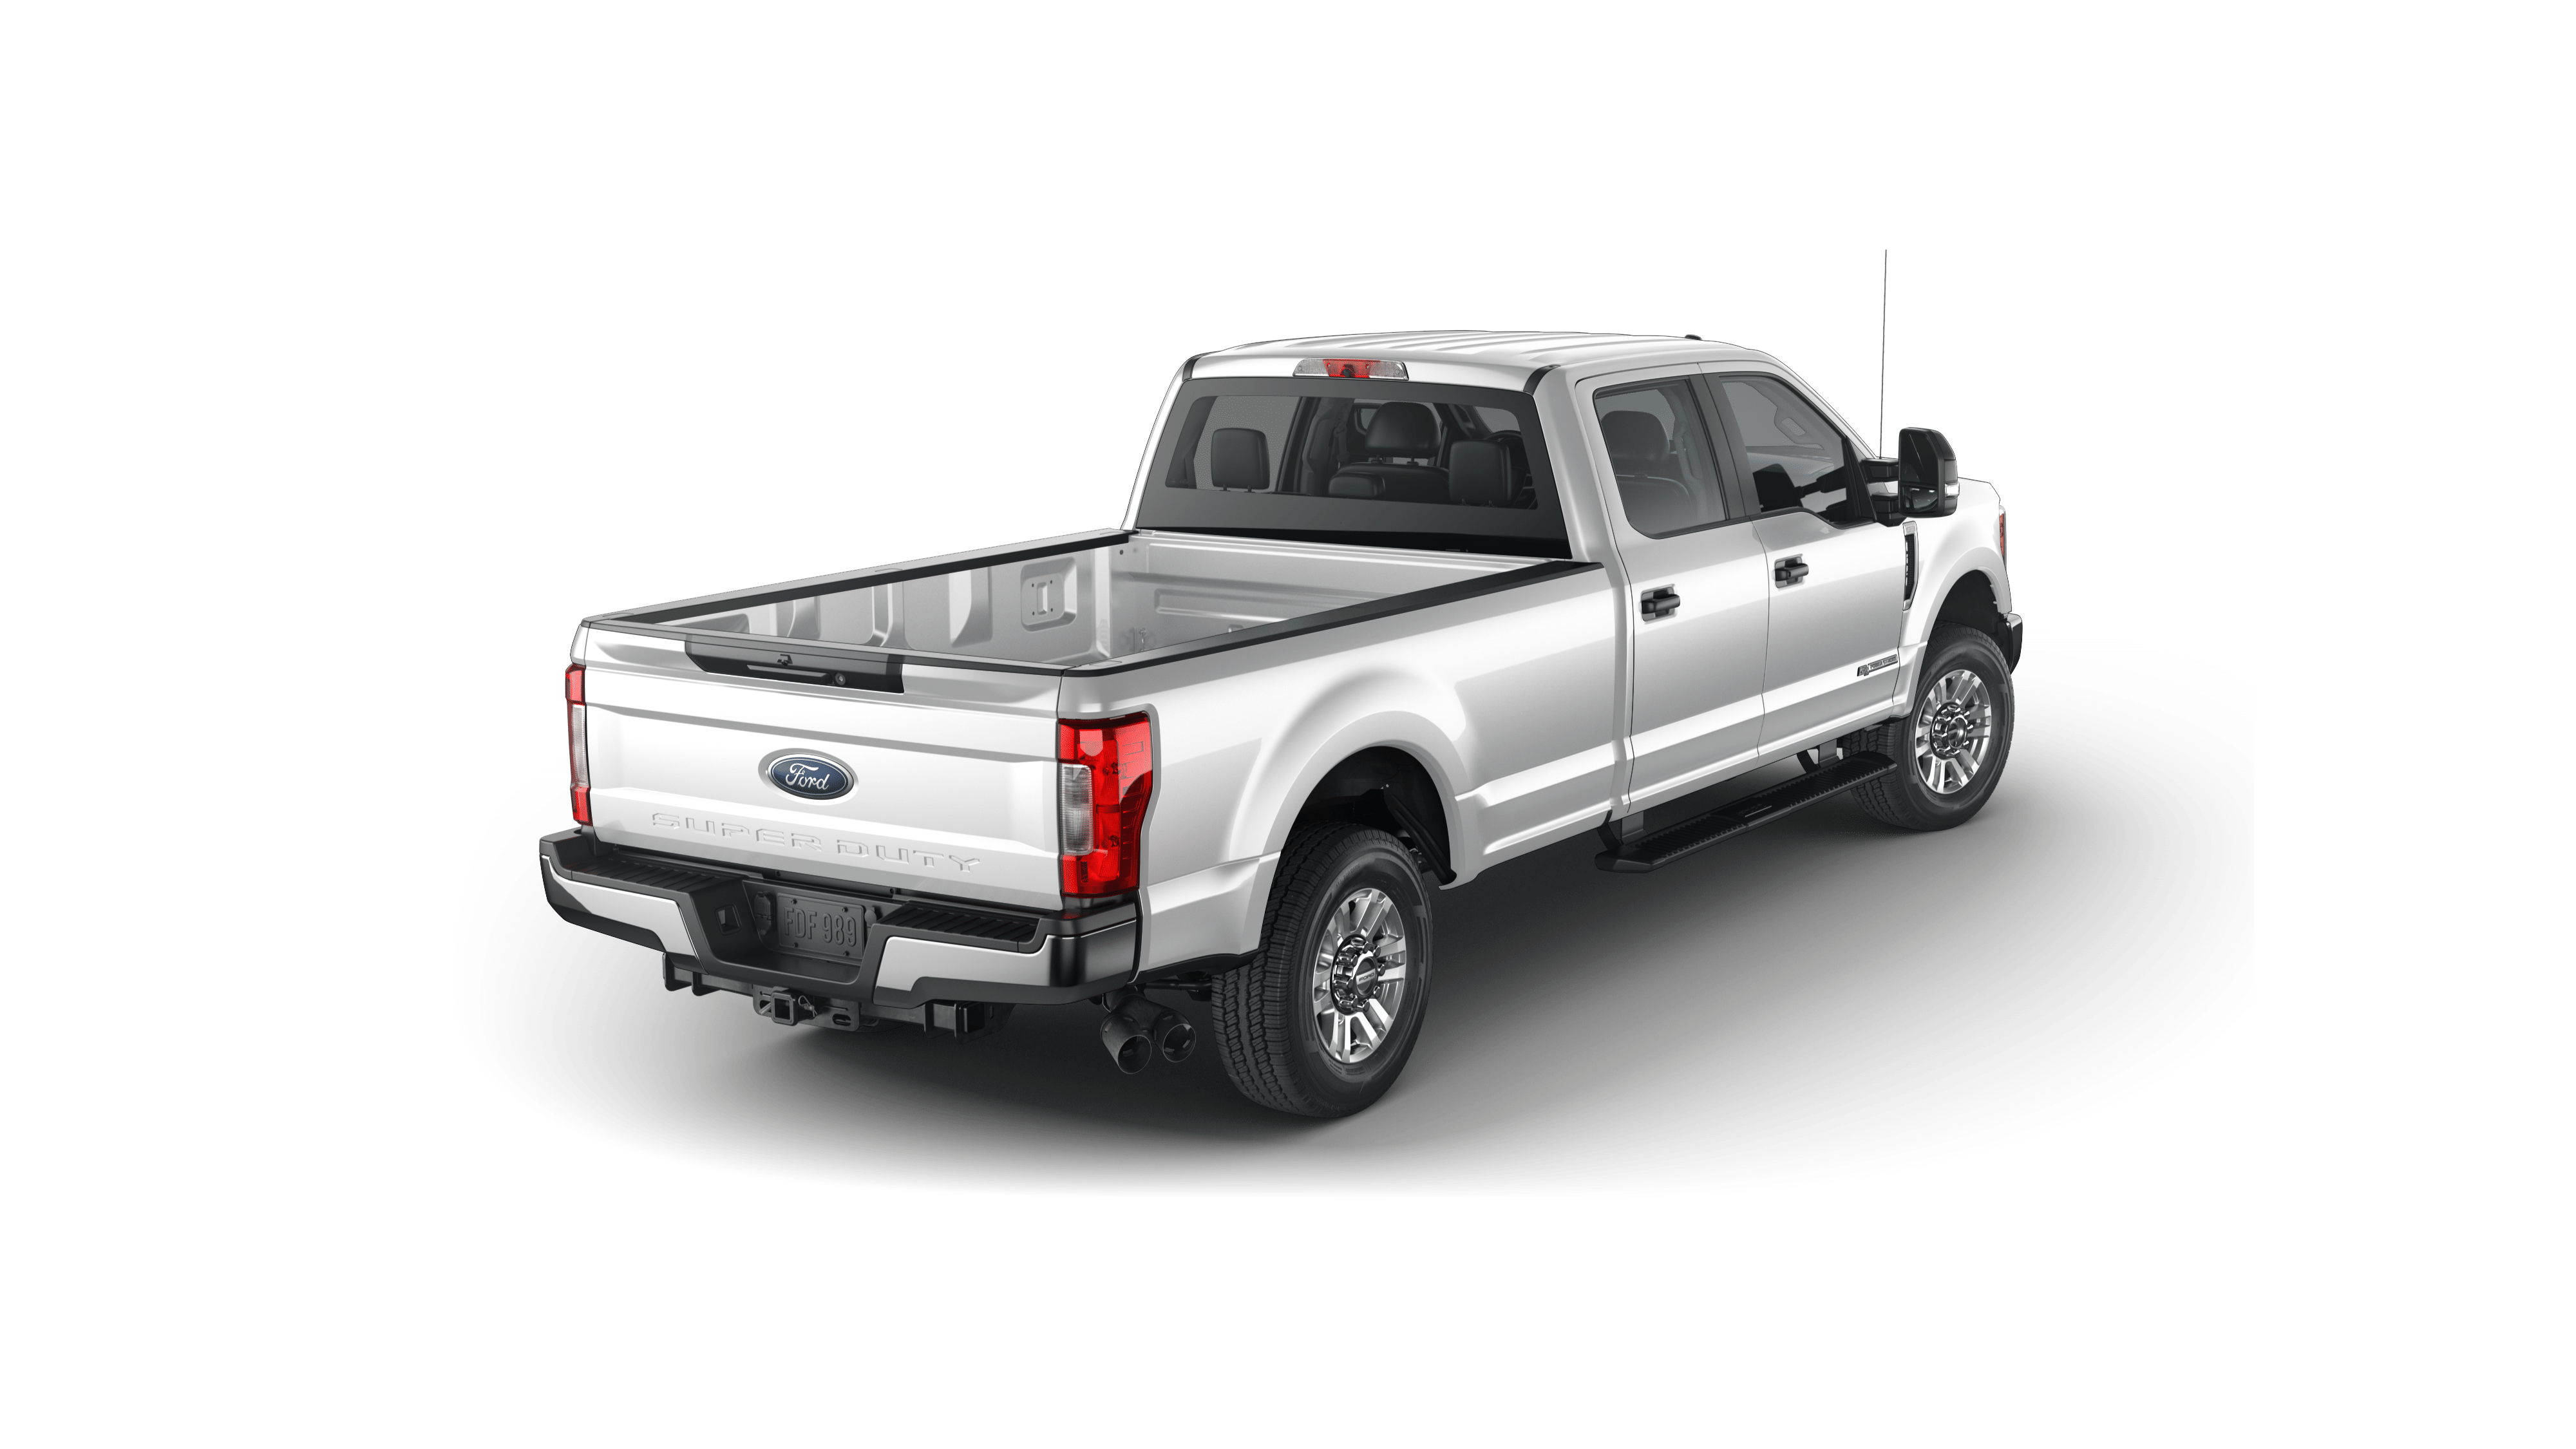 Southwest Ford Weatherford >> 2019 Ford Super Duty F-250 SRW for sale in Weatherford - 1FT7W2BT0KEG39730 - Southwest Ford, Inc.